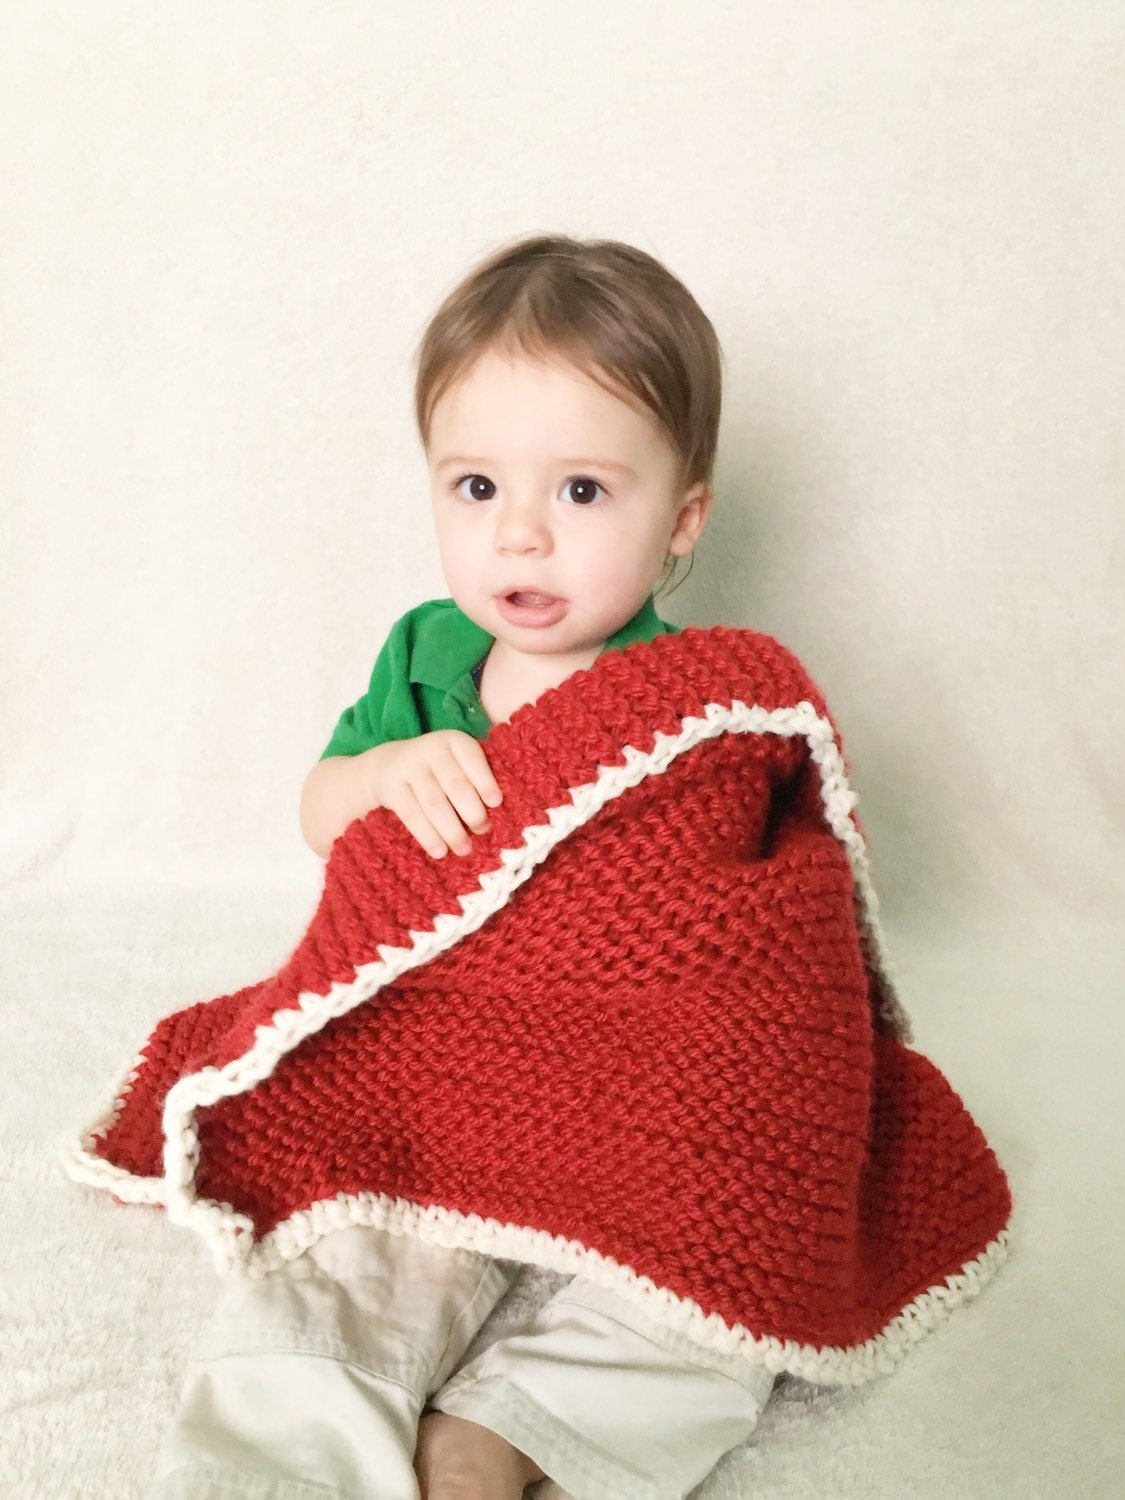 Knitting Edges For Baby Blankets : Knit baby blanket with crochet edging newborn by fibers